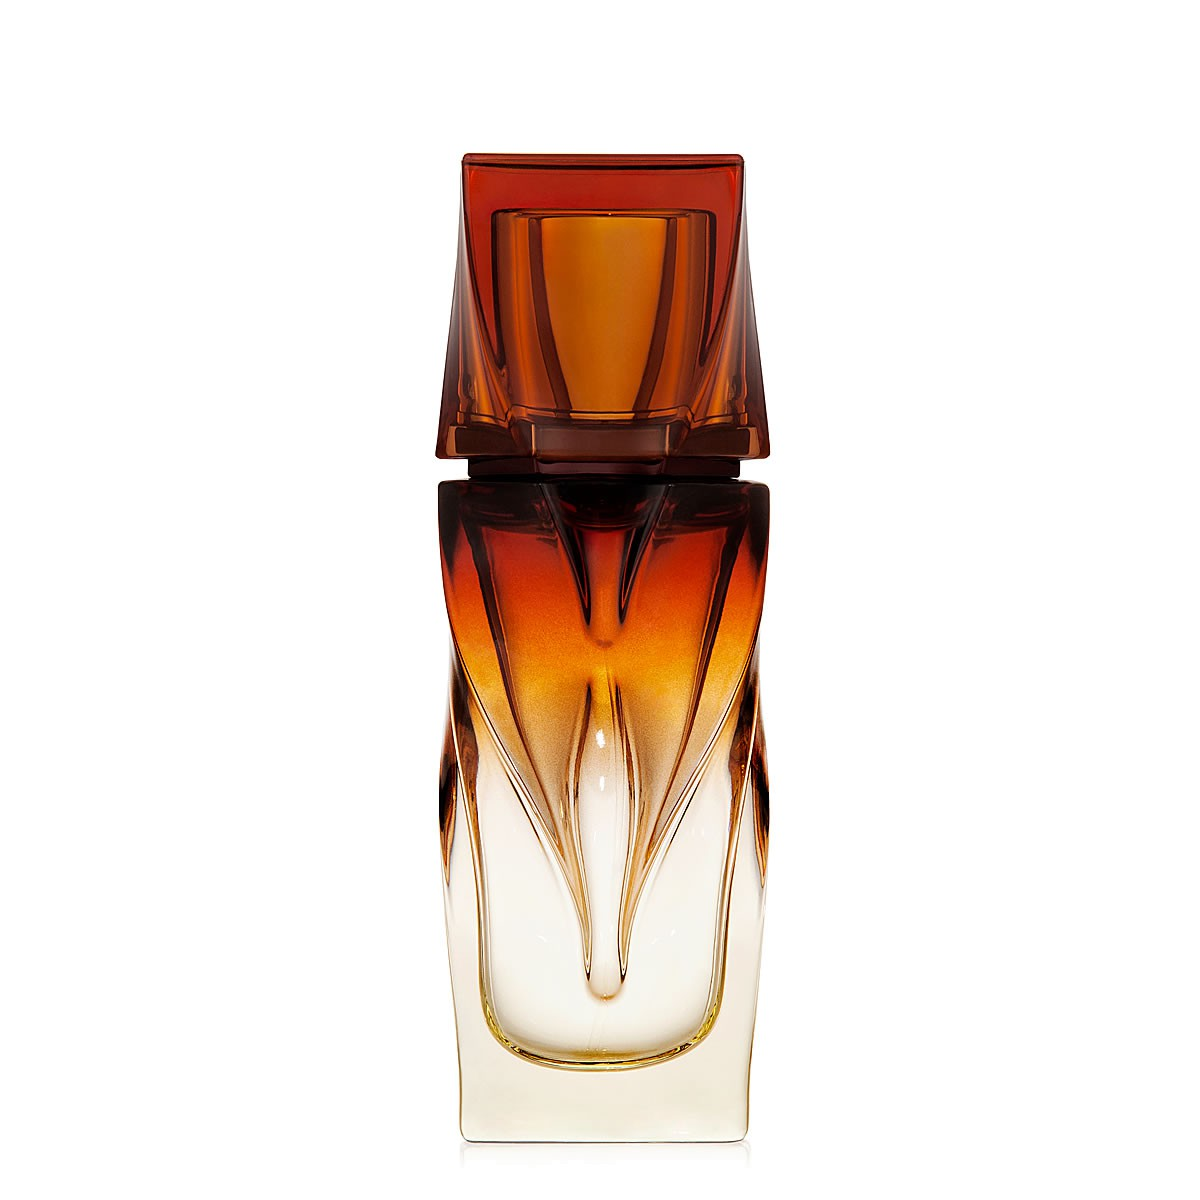 Boutique Fragrances Christian Fragrances Louboutin Louboutin Online Christian zMGSUVpq